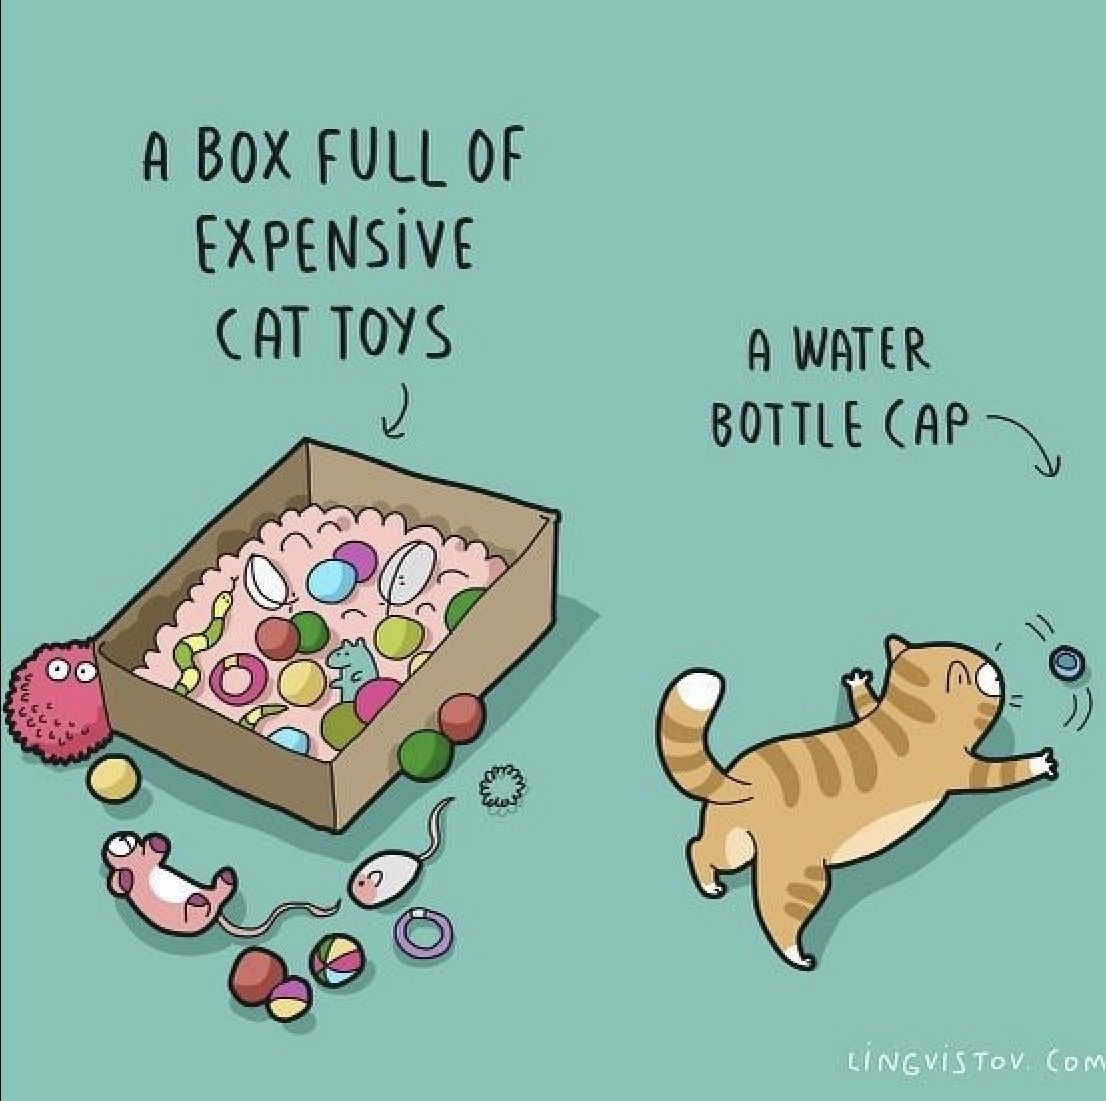 Pin By Isabella E On Animals In 2020 Cat Toys Cats Crazy Cats